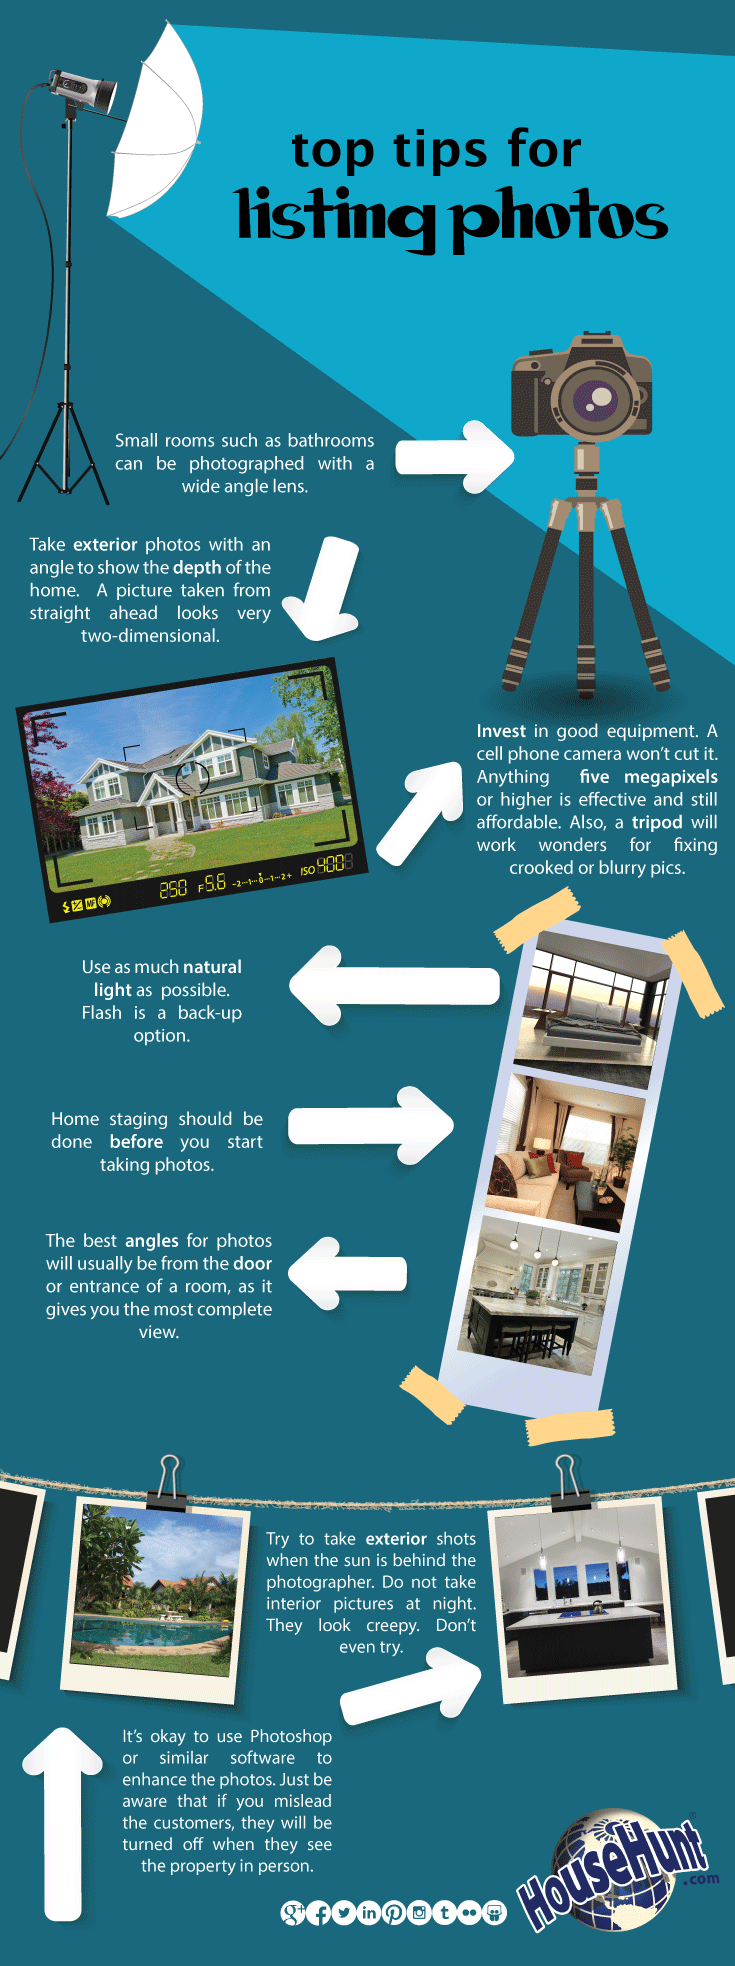 Househuntnetwork Com Nbsphousehuntnetwork Resources And Information Real Estate Infographic Real Estate Marketing Real Estate Photography